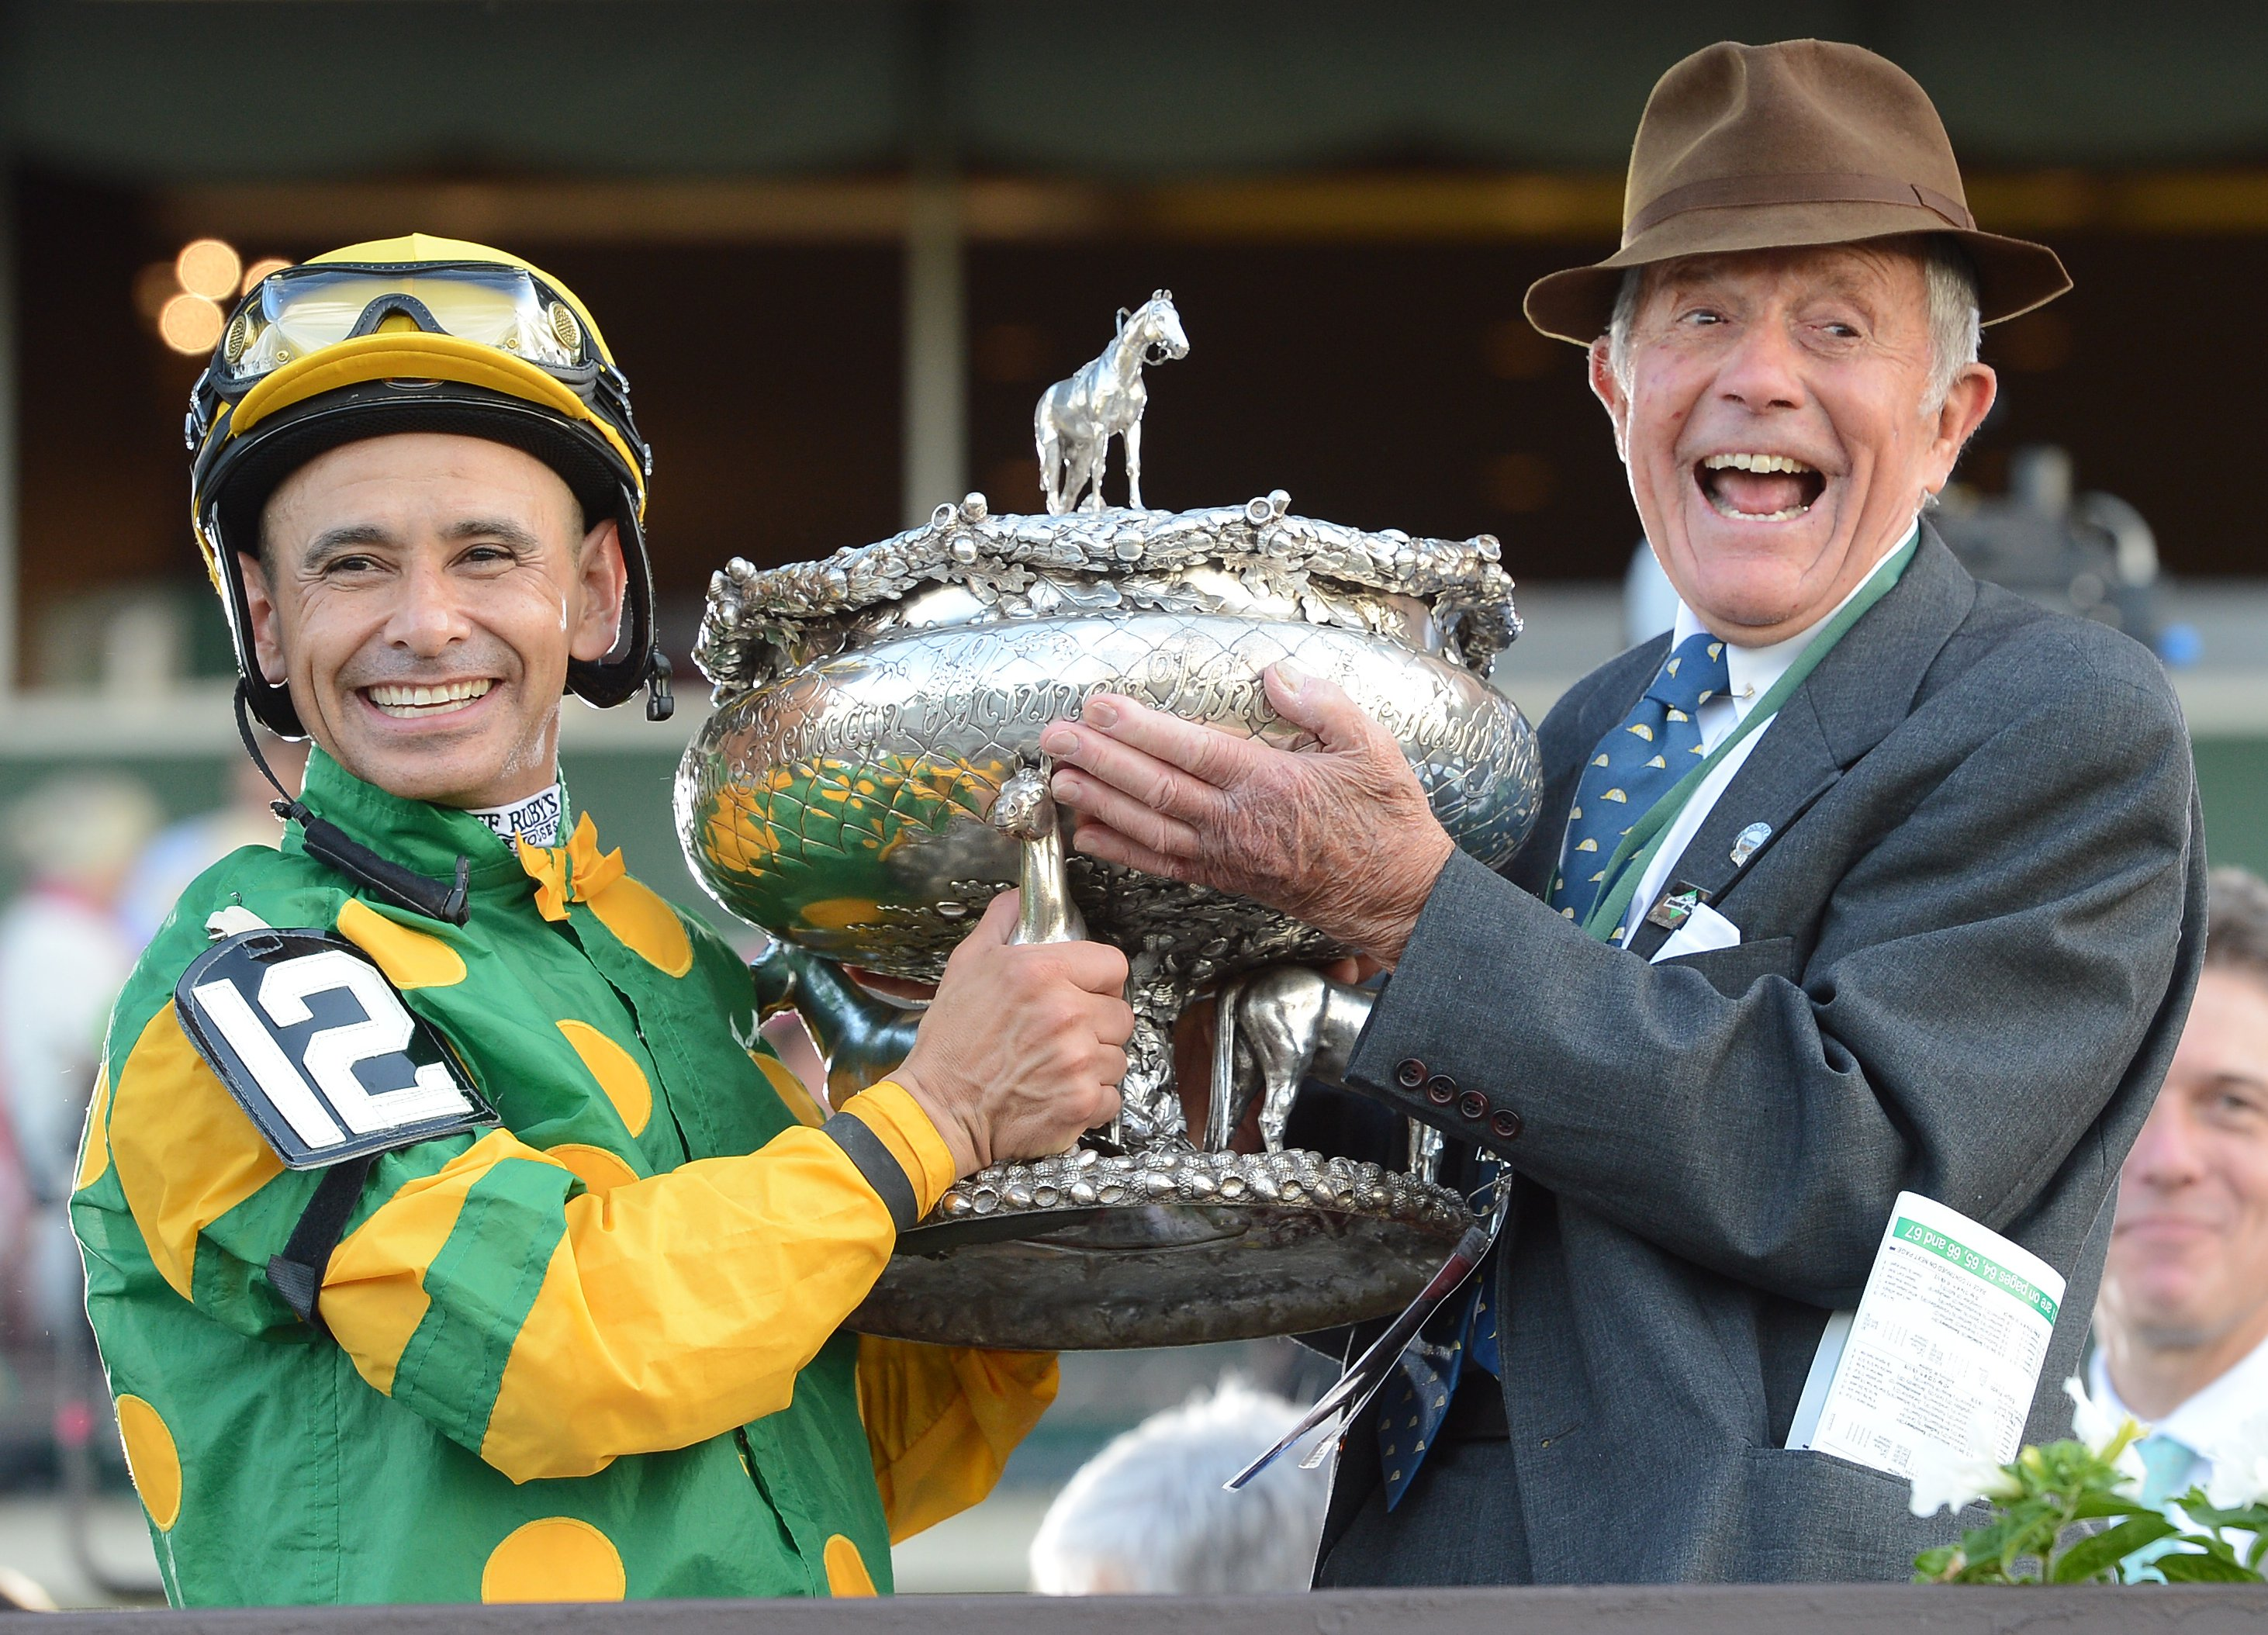 Mike Smith and Cot Campbell raise the August Belmont Memorial Trophy in celebration of Palace Malice's 2013 Belmont Stakes victory (NYRA)